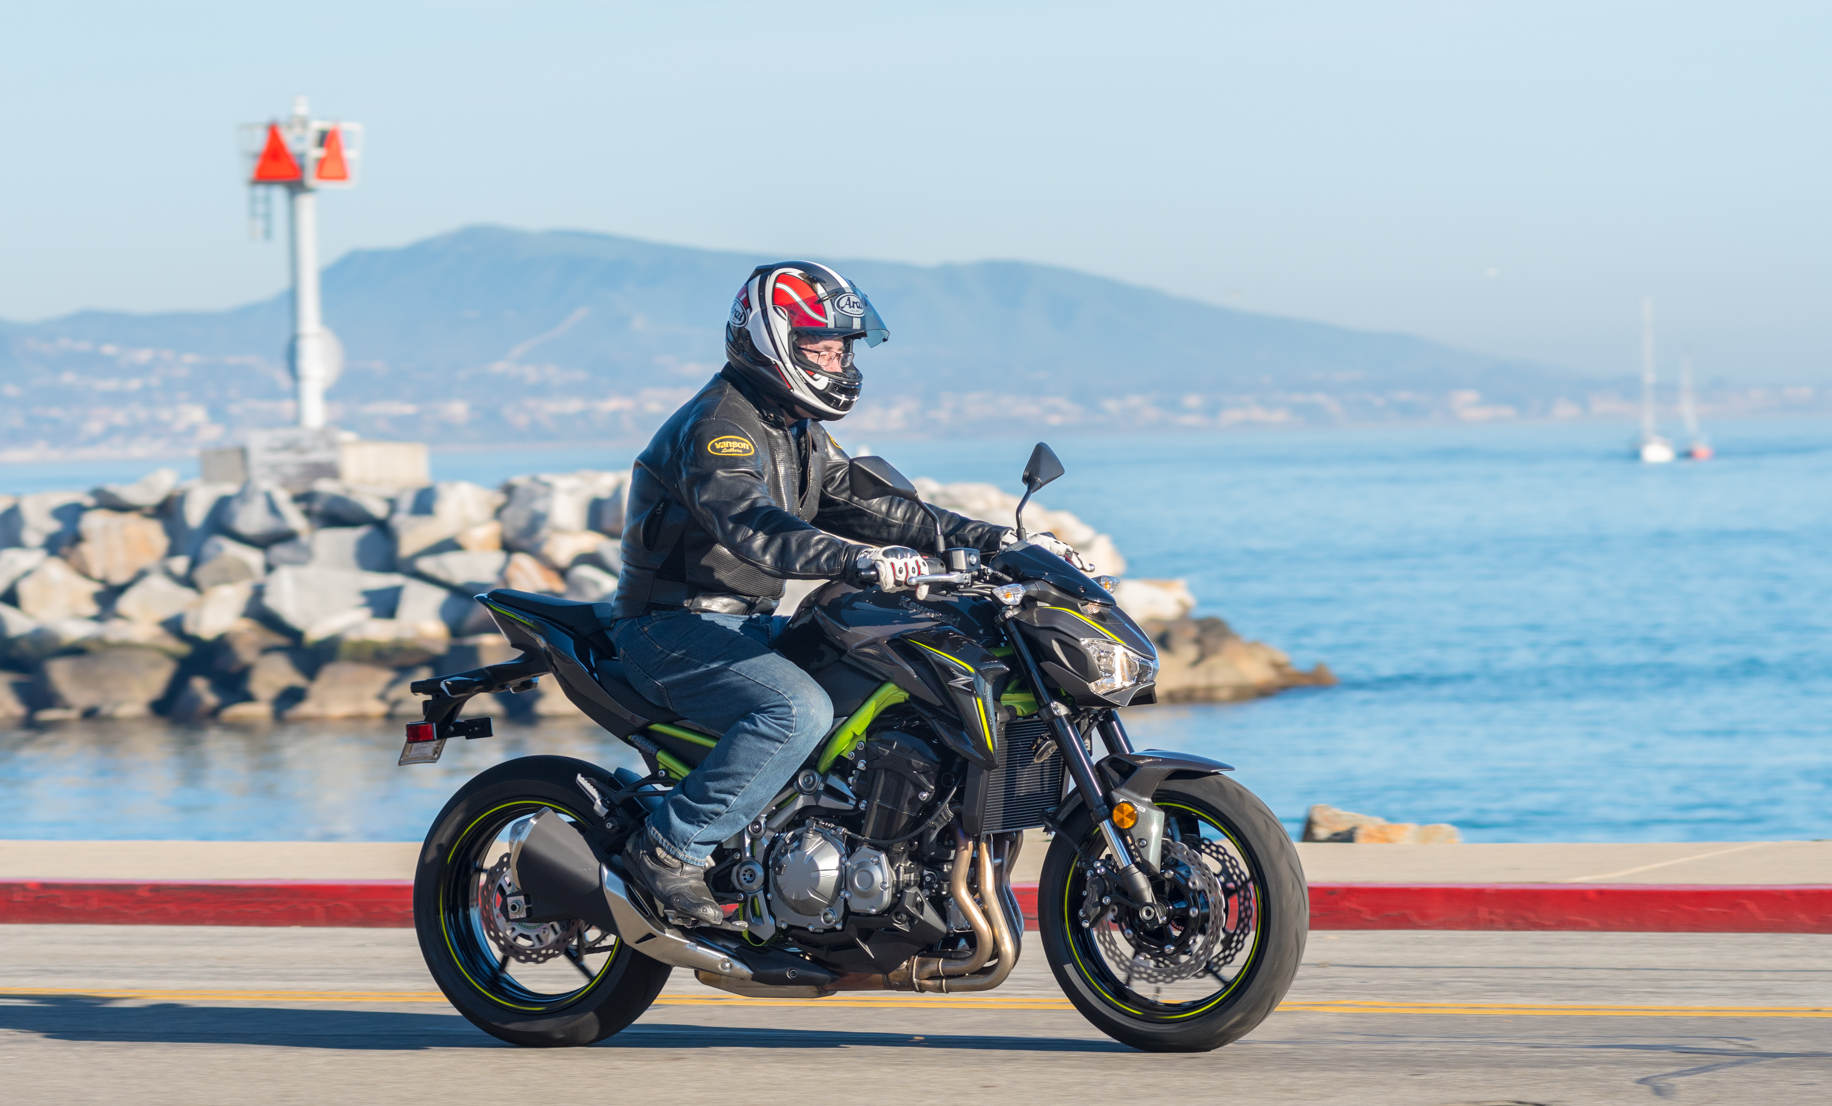 2017 Kawasaki Z900 MD First Ride Part 2